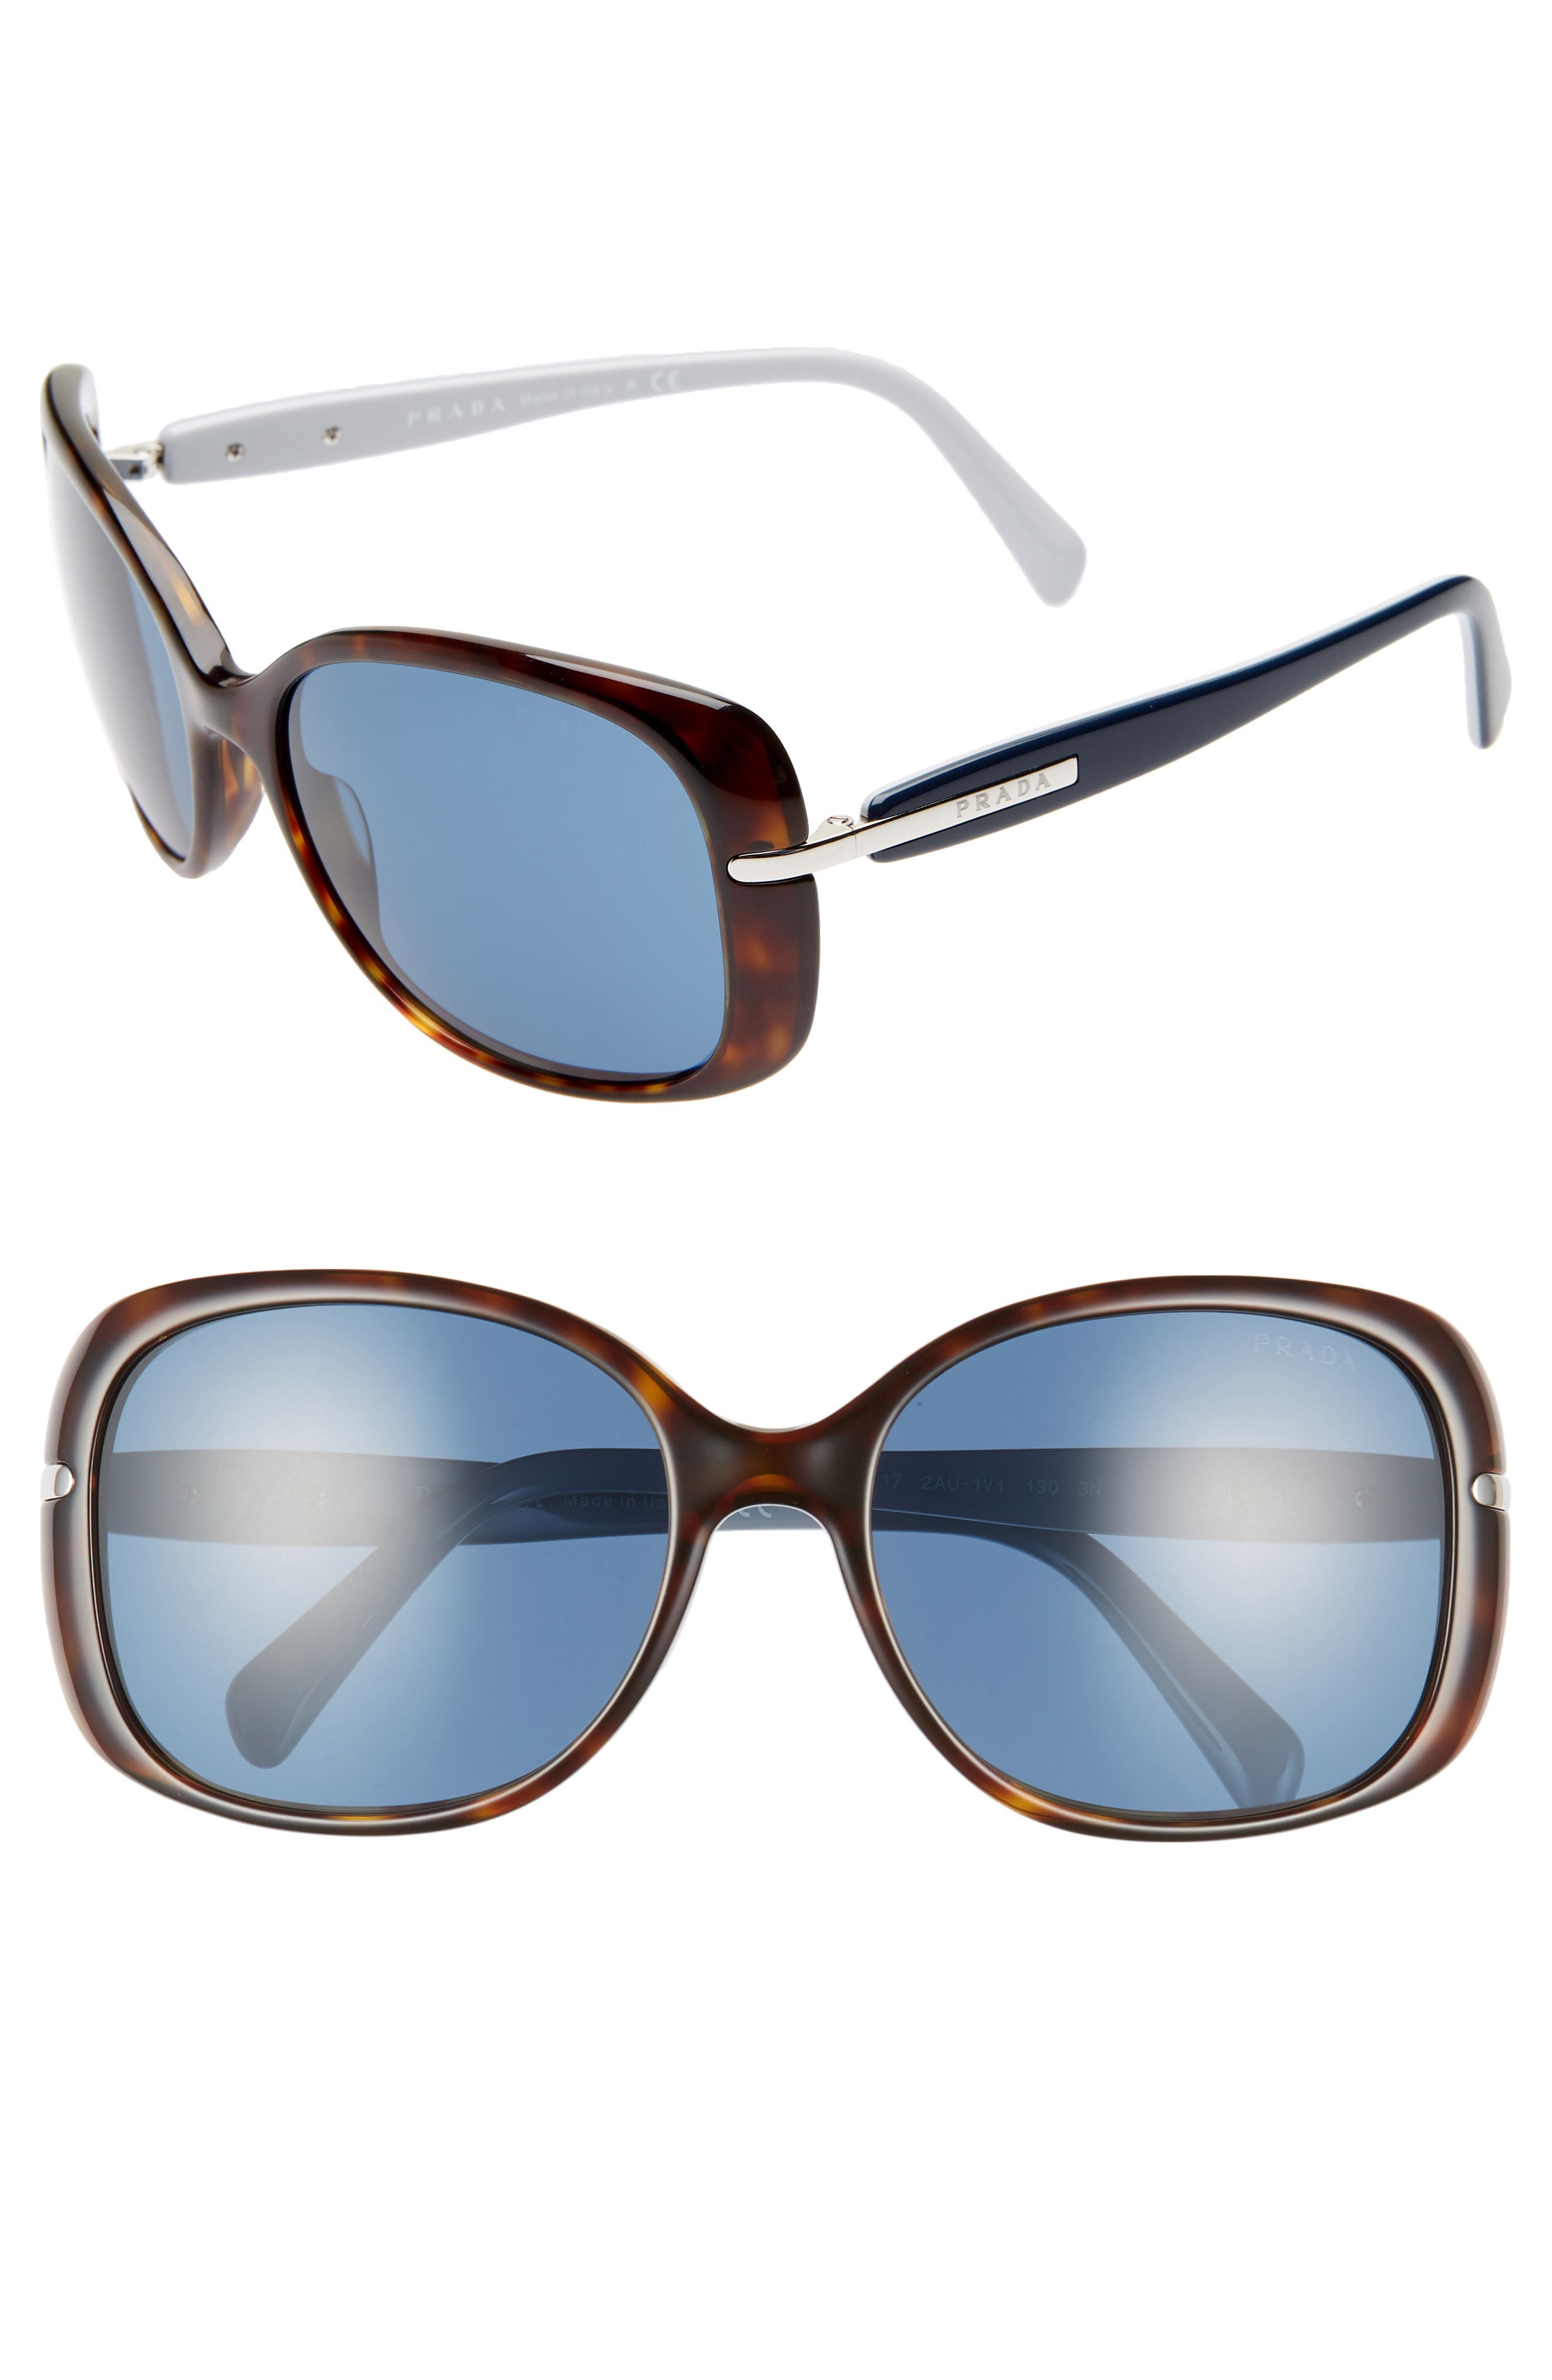 017a66be48c40 Prada Sunglasses for Women